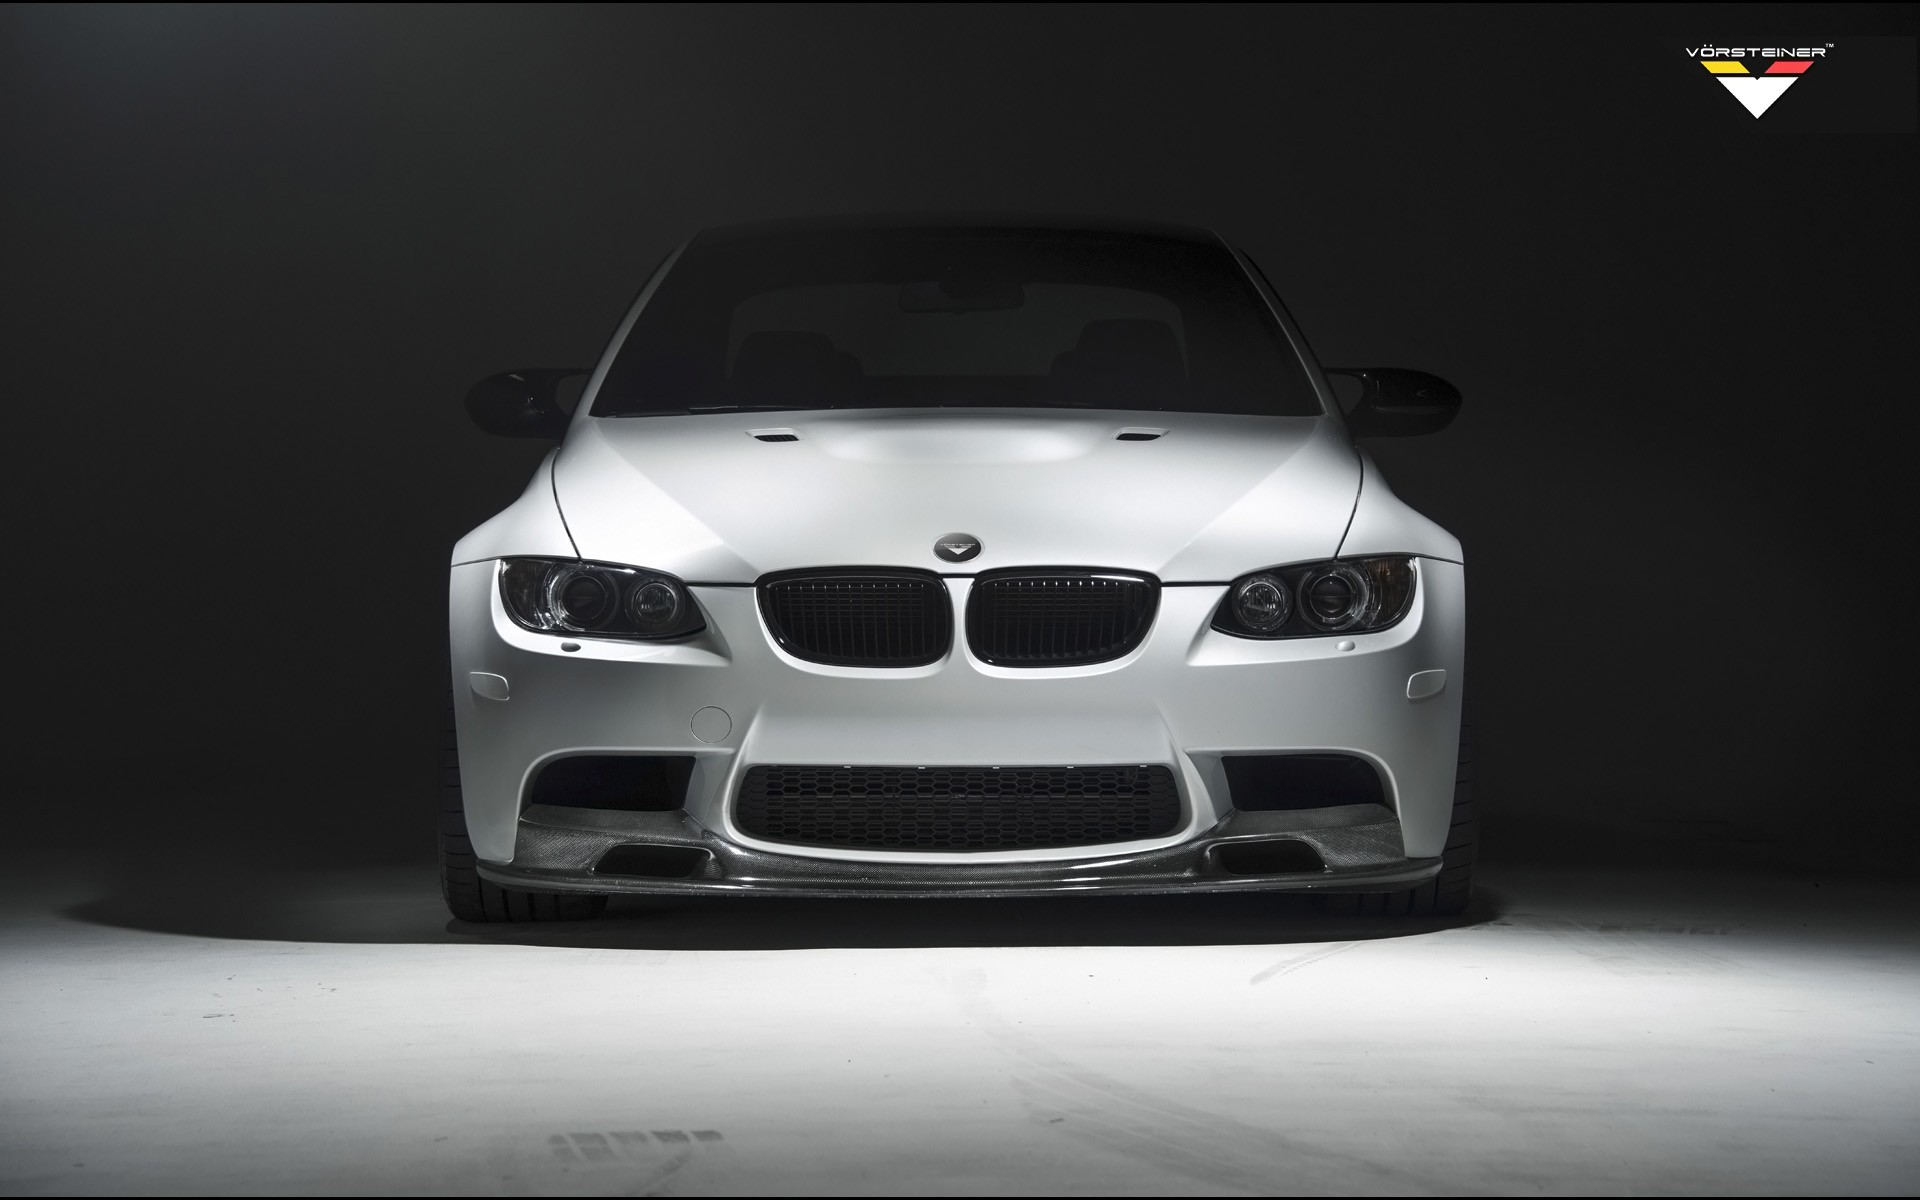 2014 Vorsteiner BMW E92 M3 Wallpaper | HD Car Wallpapers ...